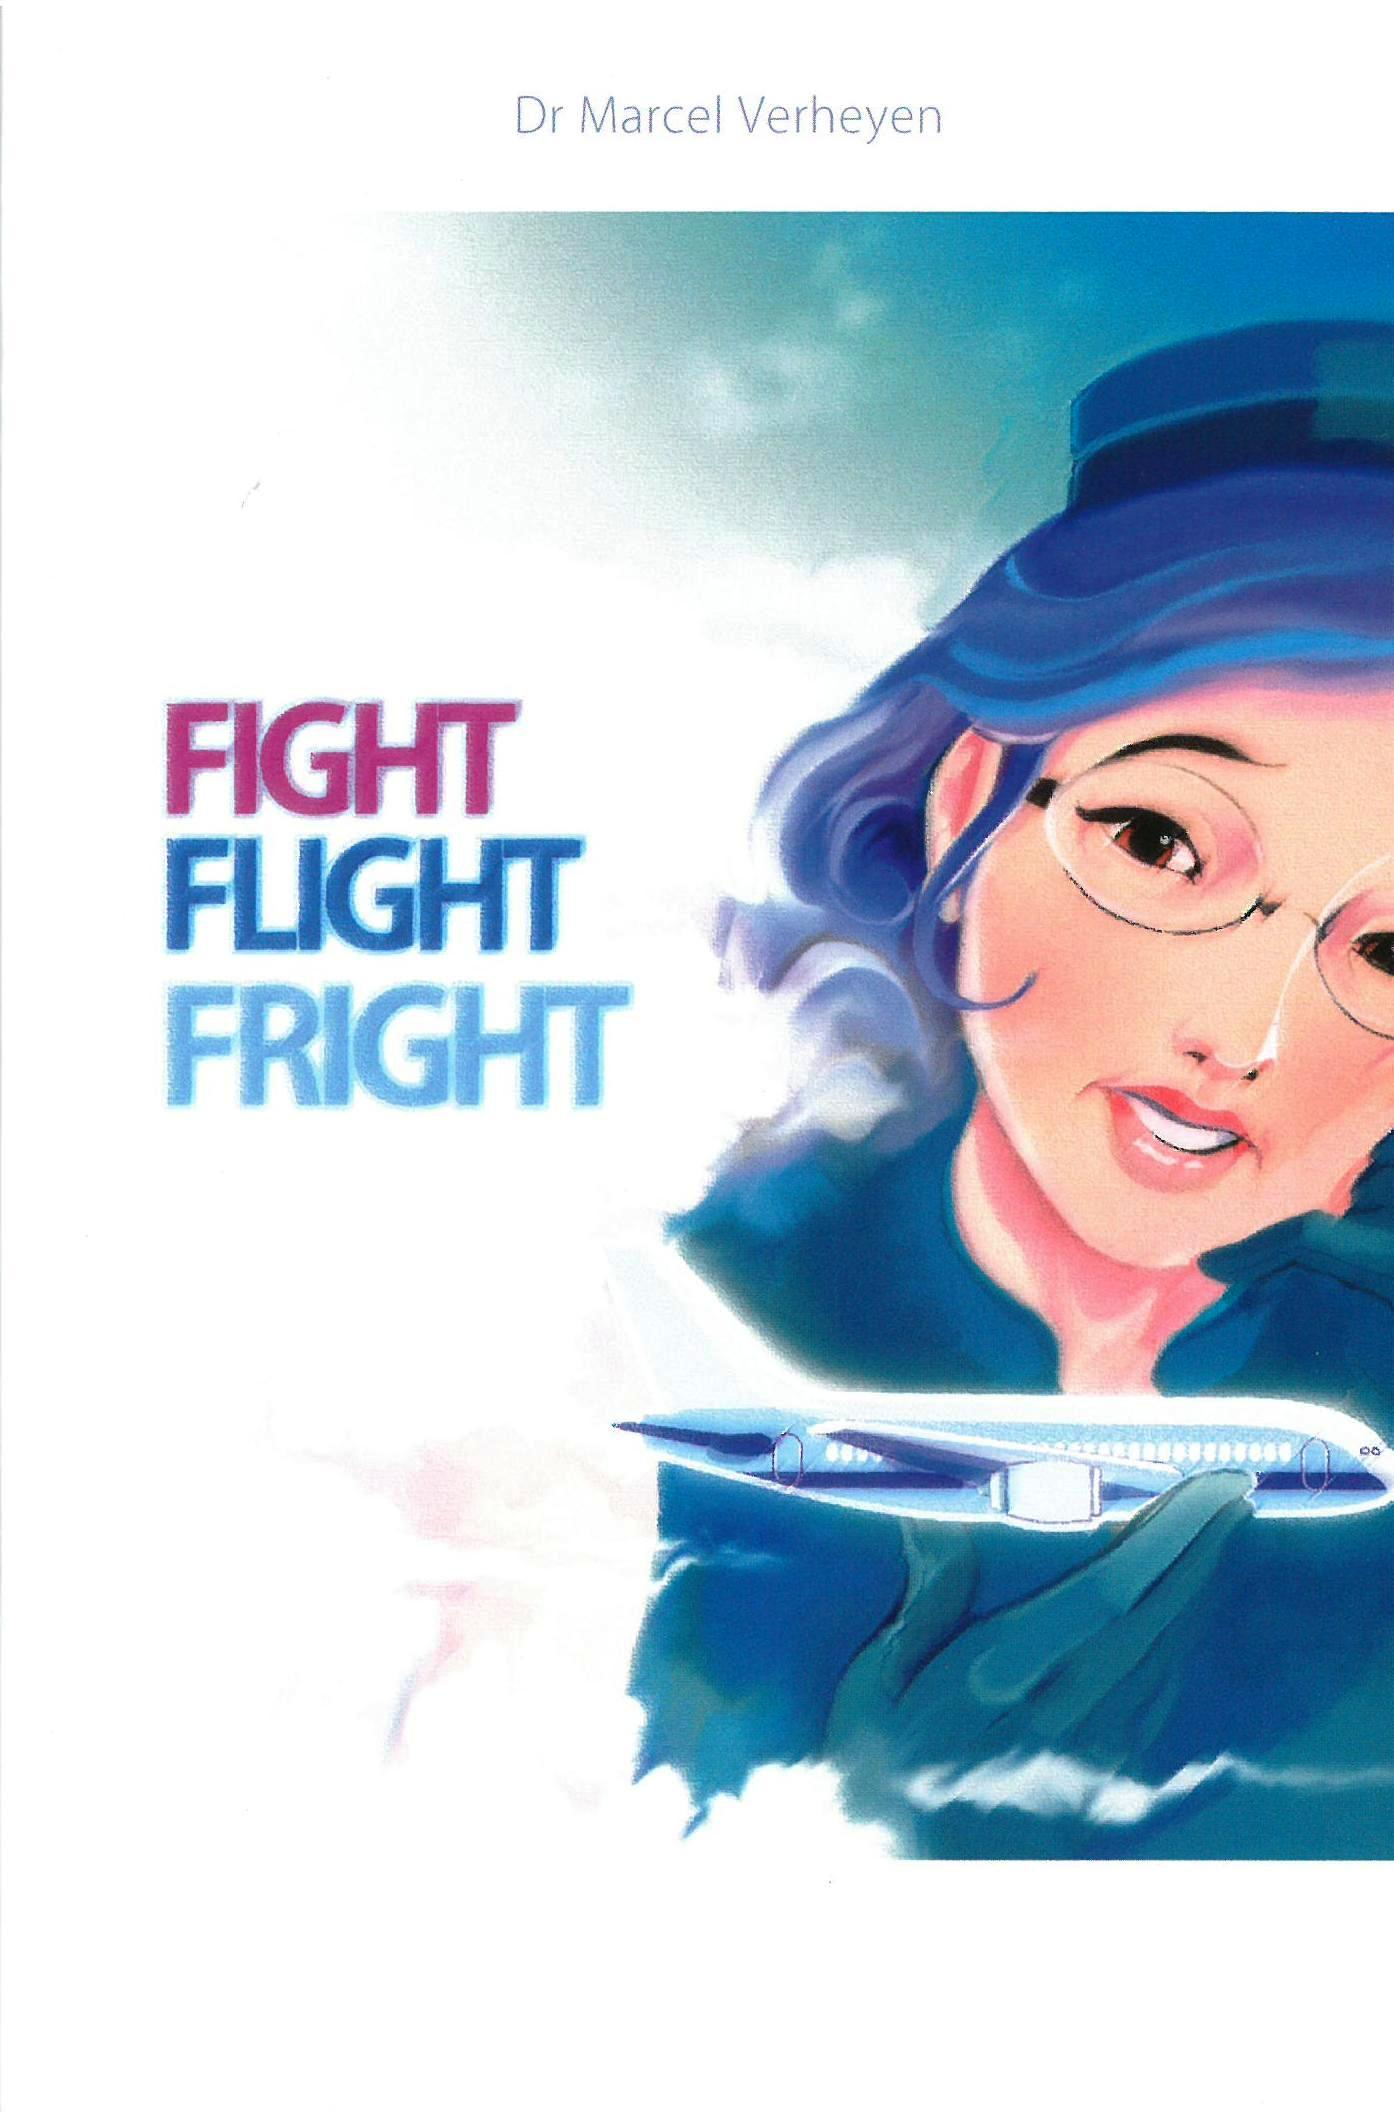 Fight flight fright